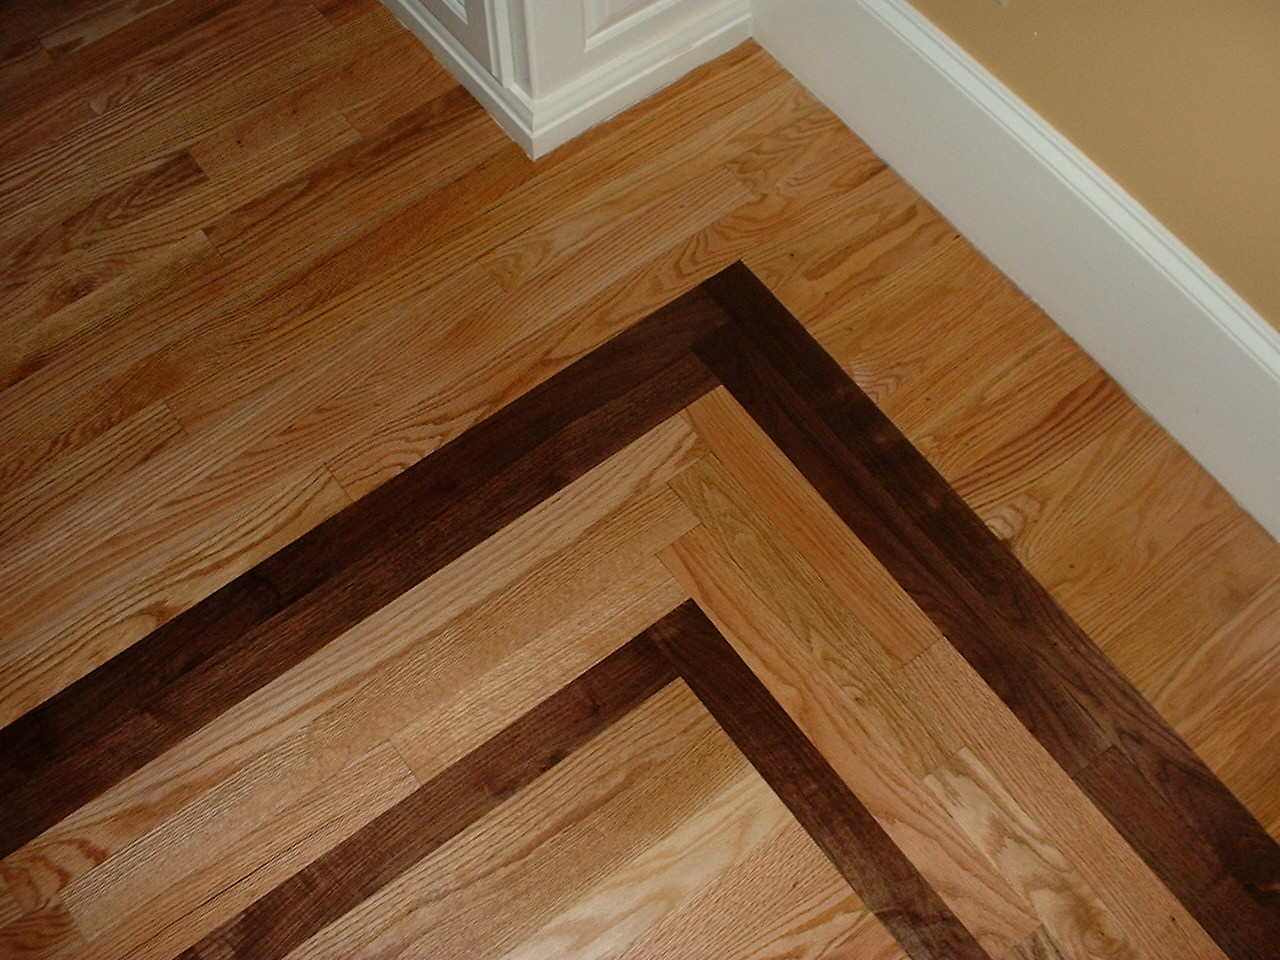 Borders ozark hardwood flooring Hardwood floor designs borders